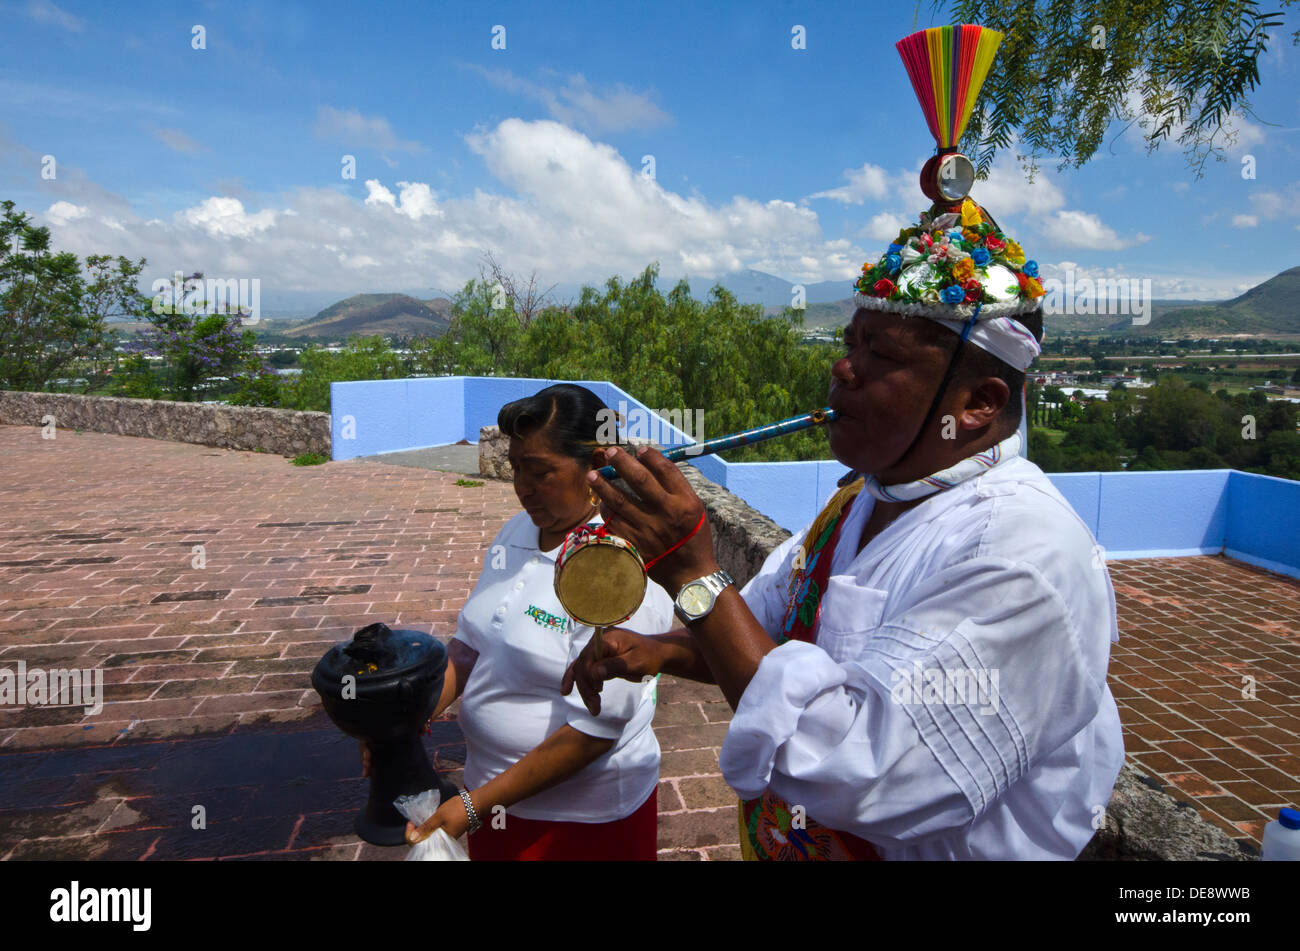 Volador playing the flute and drum during the ritual before the tree trunk is erected for future Voladores displays in Mexico. - Stock Image